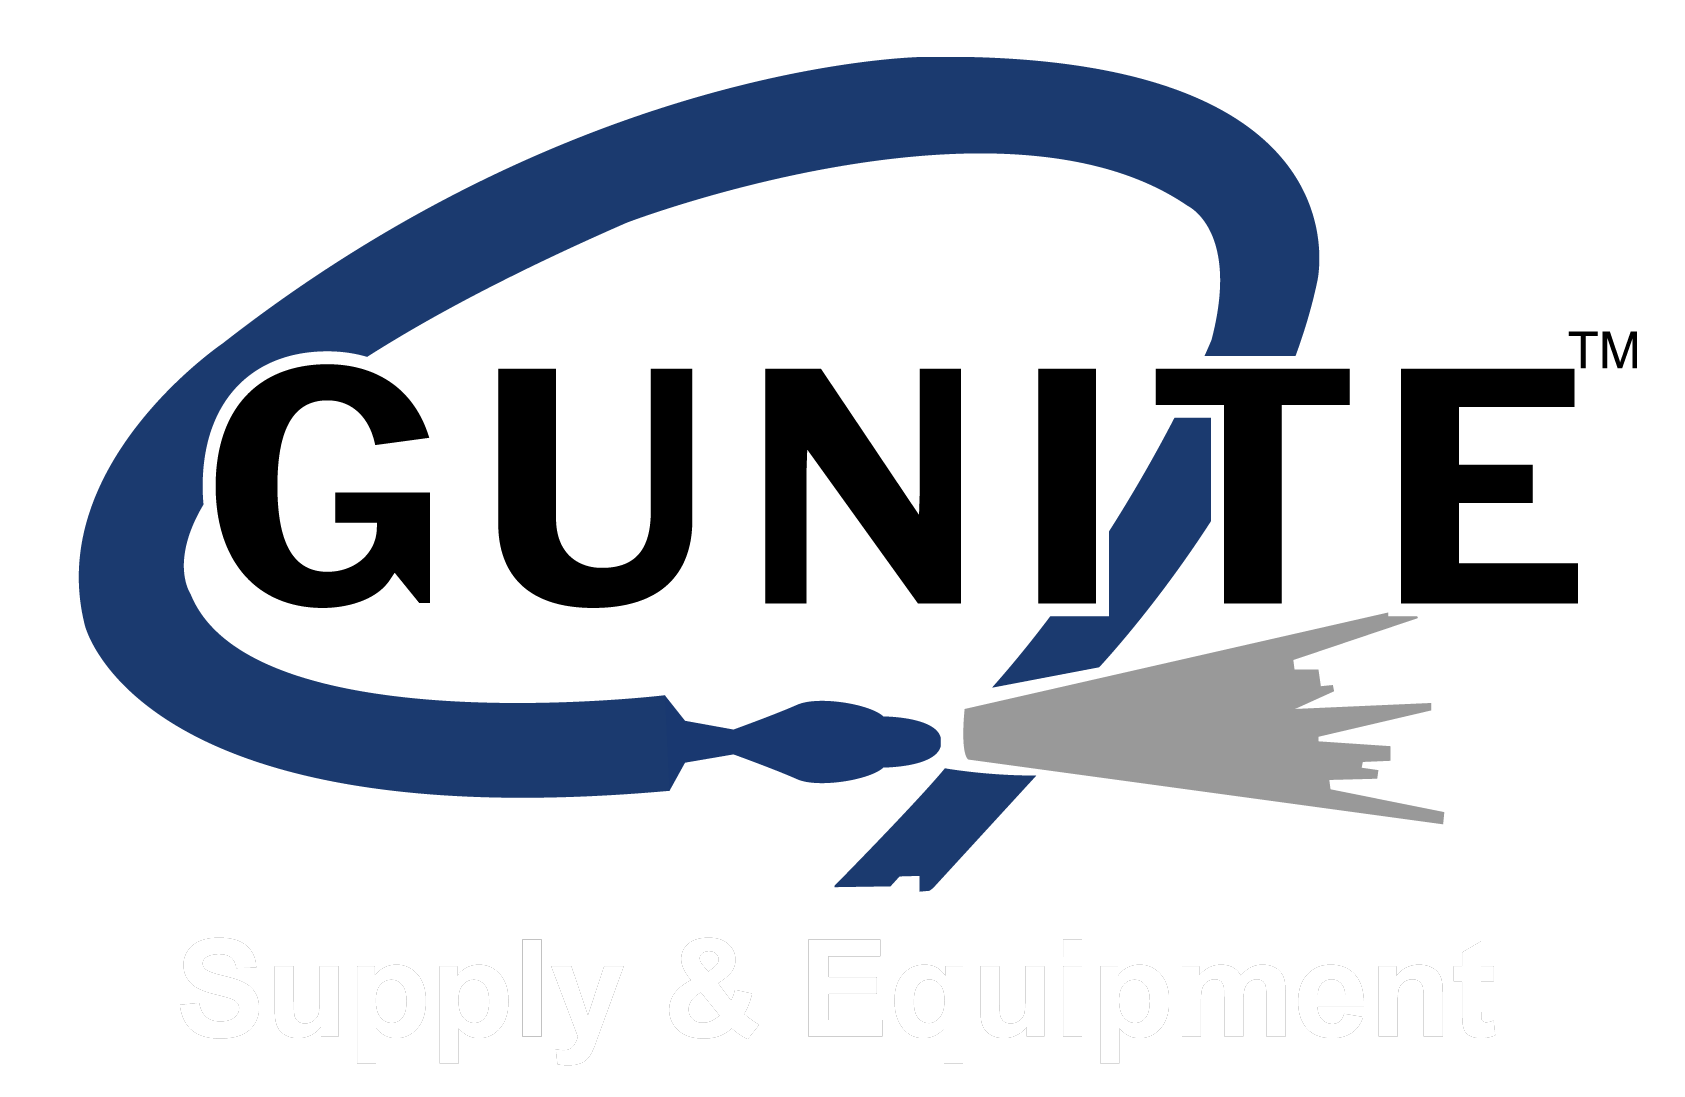 Gunite Supply